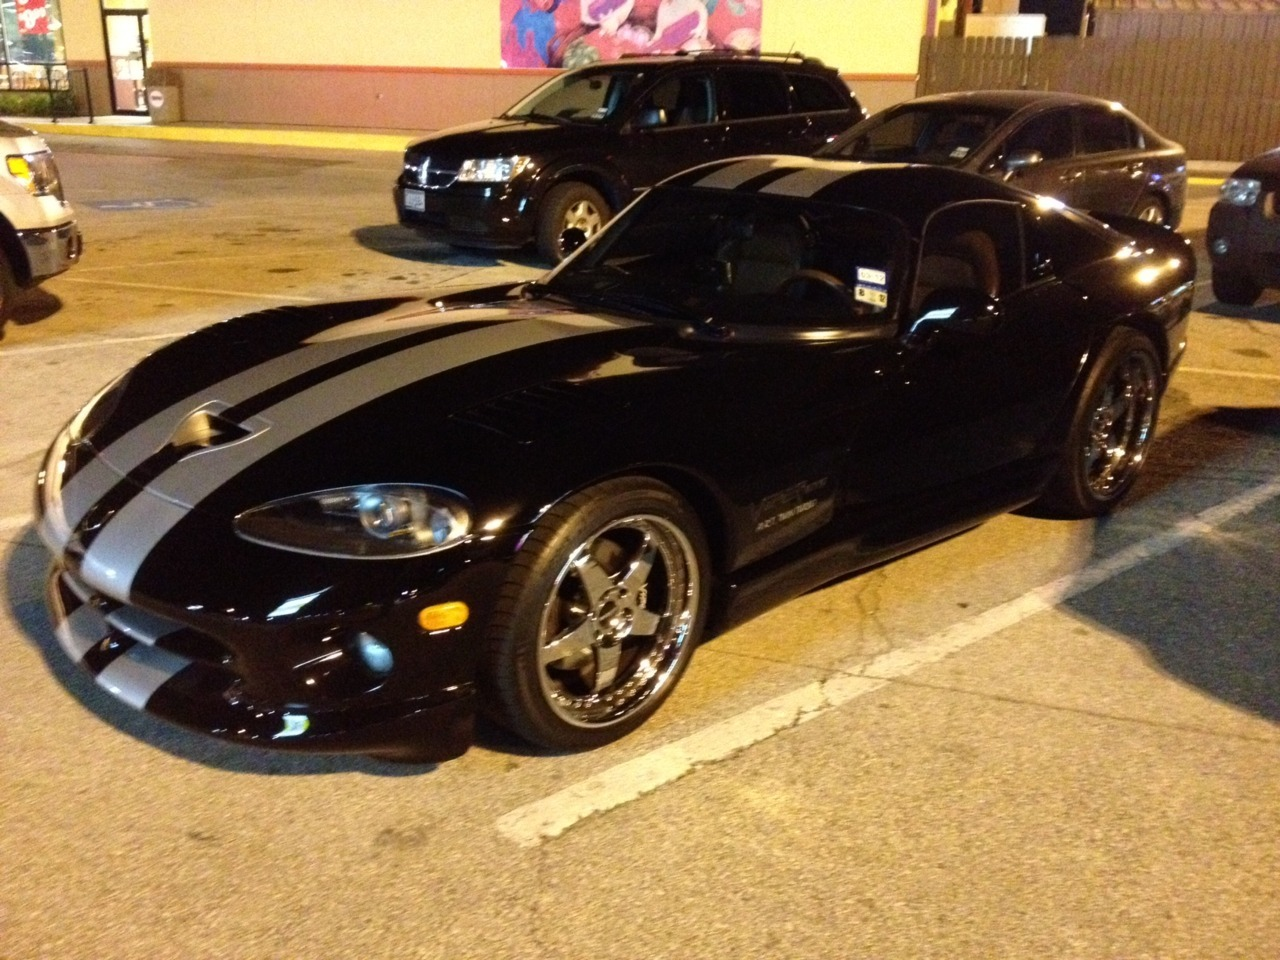 Wordsasmedium: Dodge Viper GTS Love the muscle and style of these older Vipers, and it's always a pleasure when it's a black GTS. Thanks for the submission!